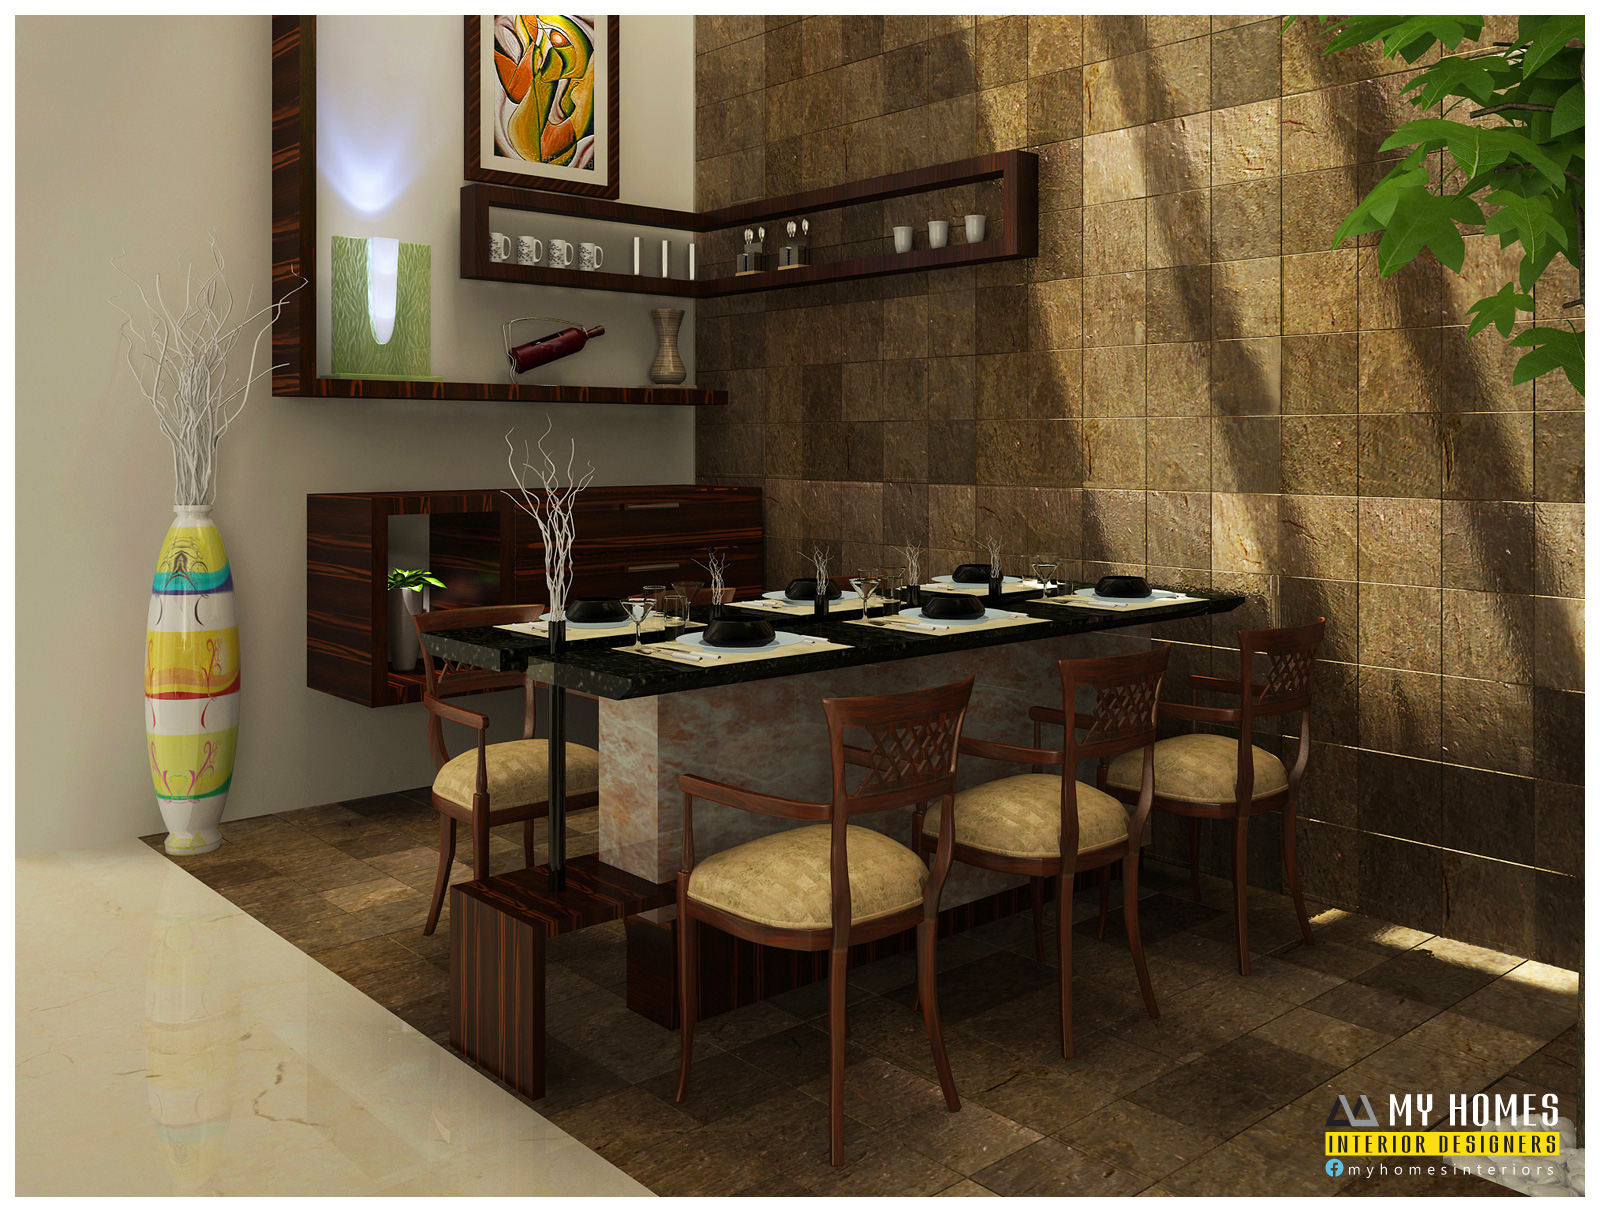 Home Interior Design Dining Room Interior Design Archives Page 2 Of 4 Kerala Interior